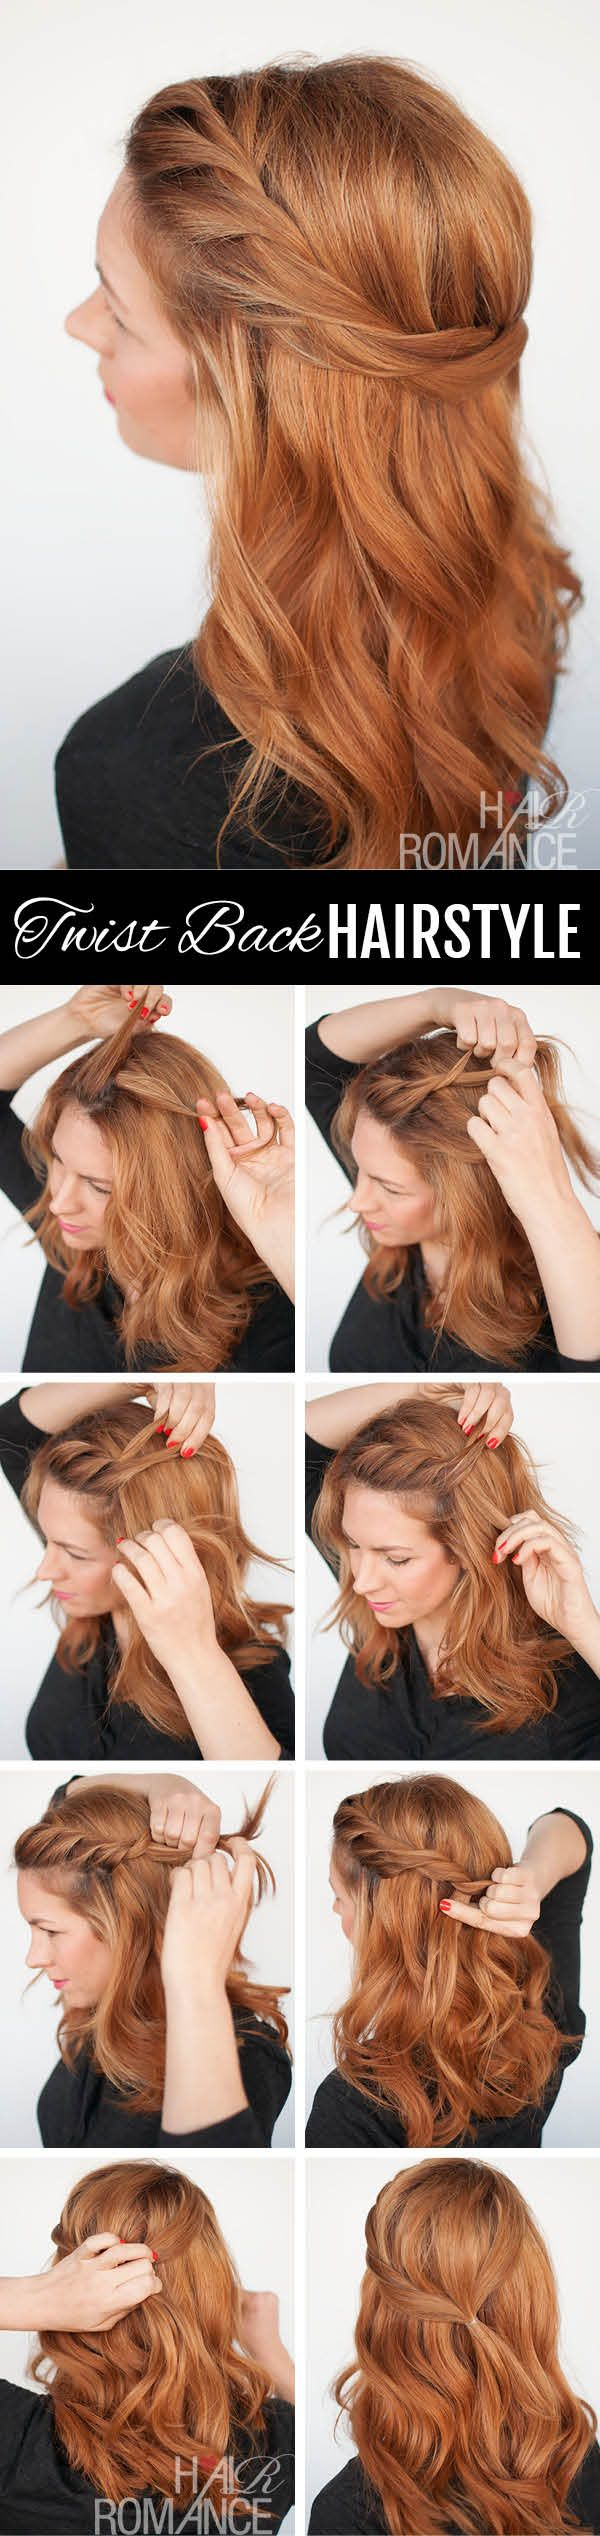 Hair Romance - the twist back hair style tutorial